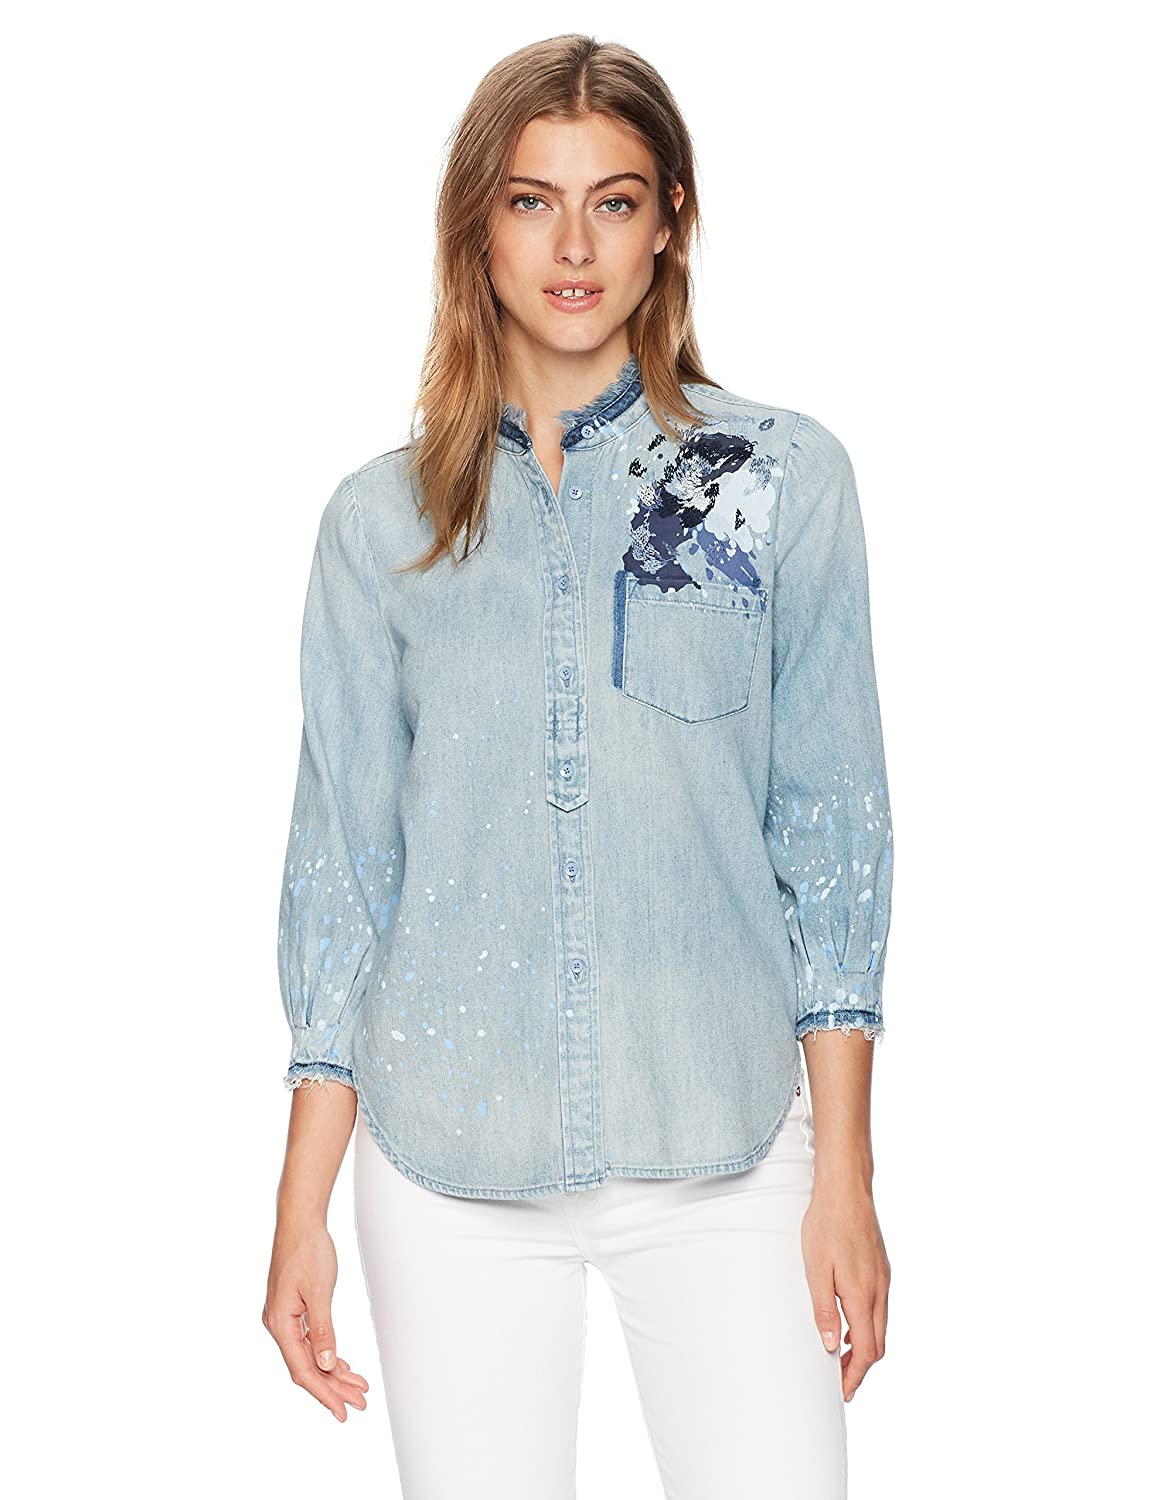 AG Adriano Goldschmied Womens Courtney Button Up